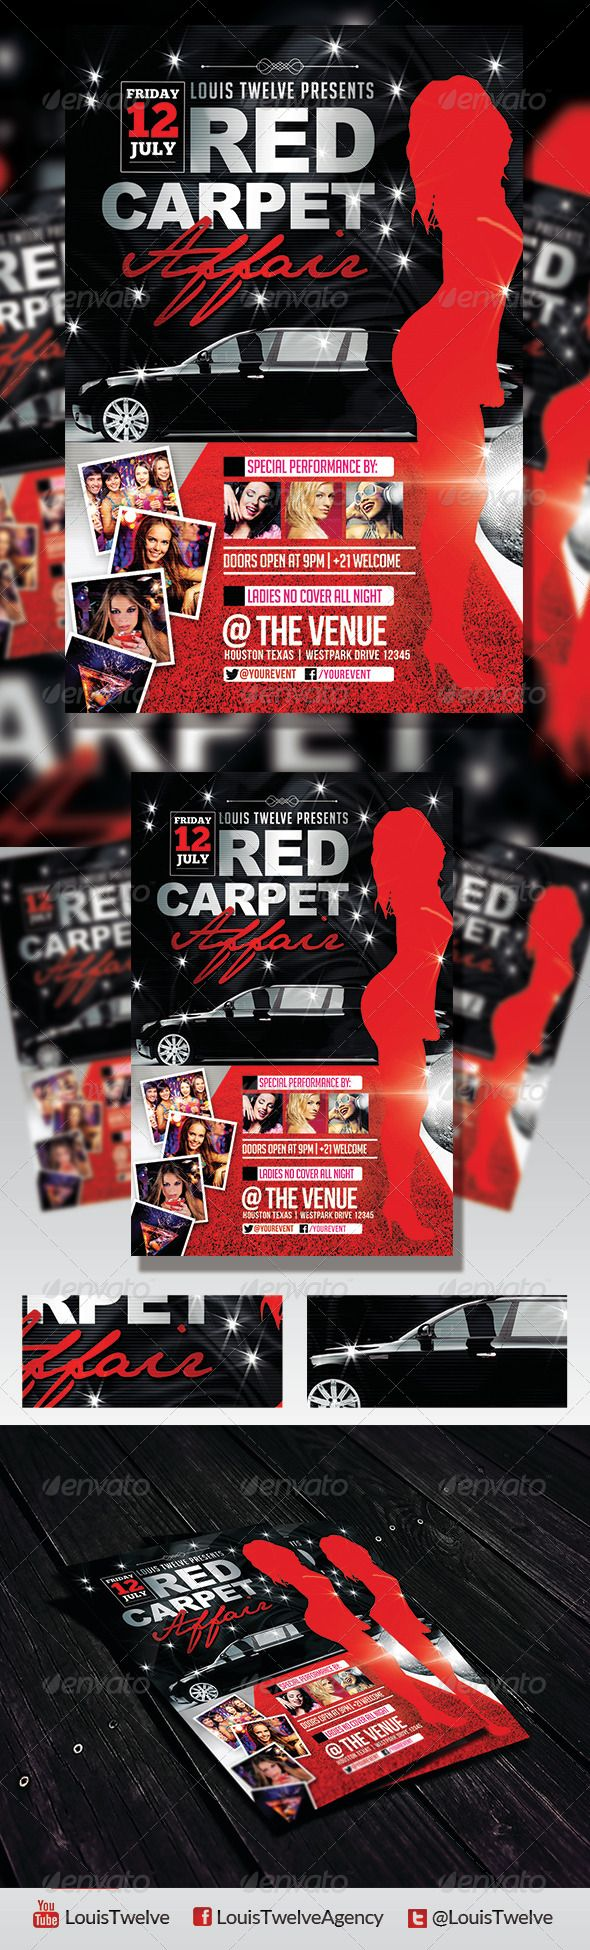 Red Carpet Affair 3 Flyer Template – Red Flyer Template